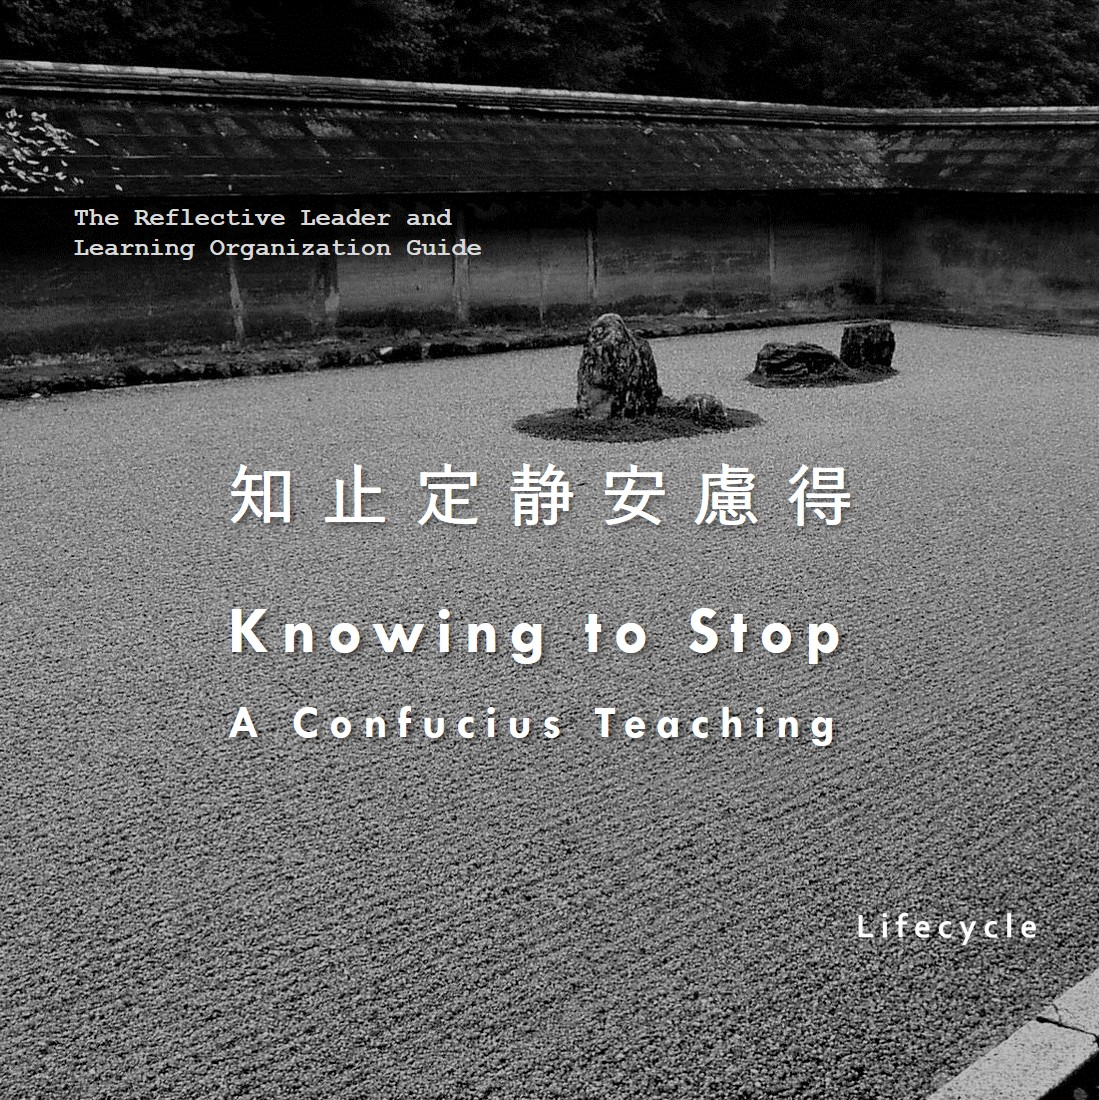 Knowing to Stop, a Confucius teaching